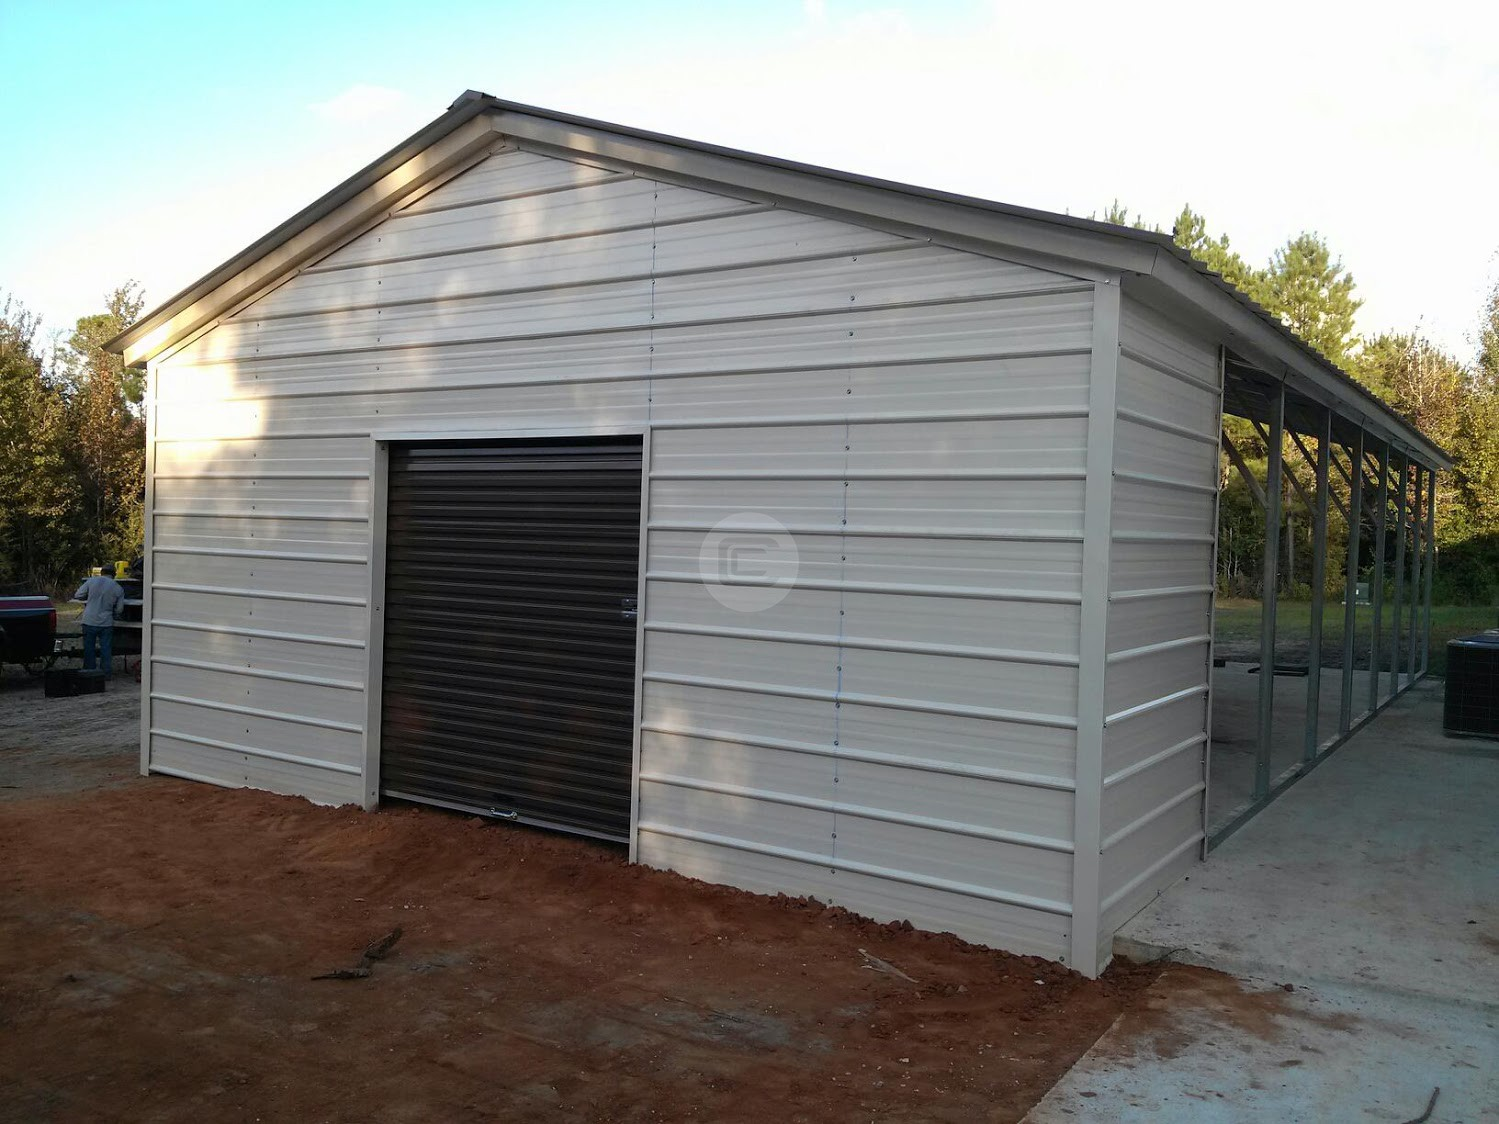 Garage Man Cave Extension Carport Expansion Utility Carport Conversion